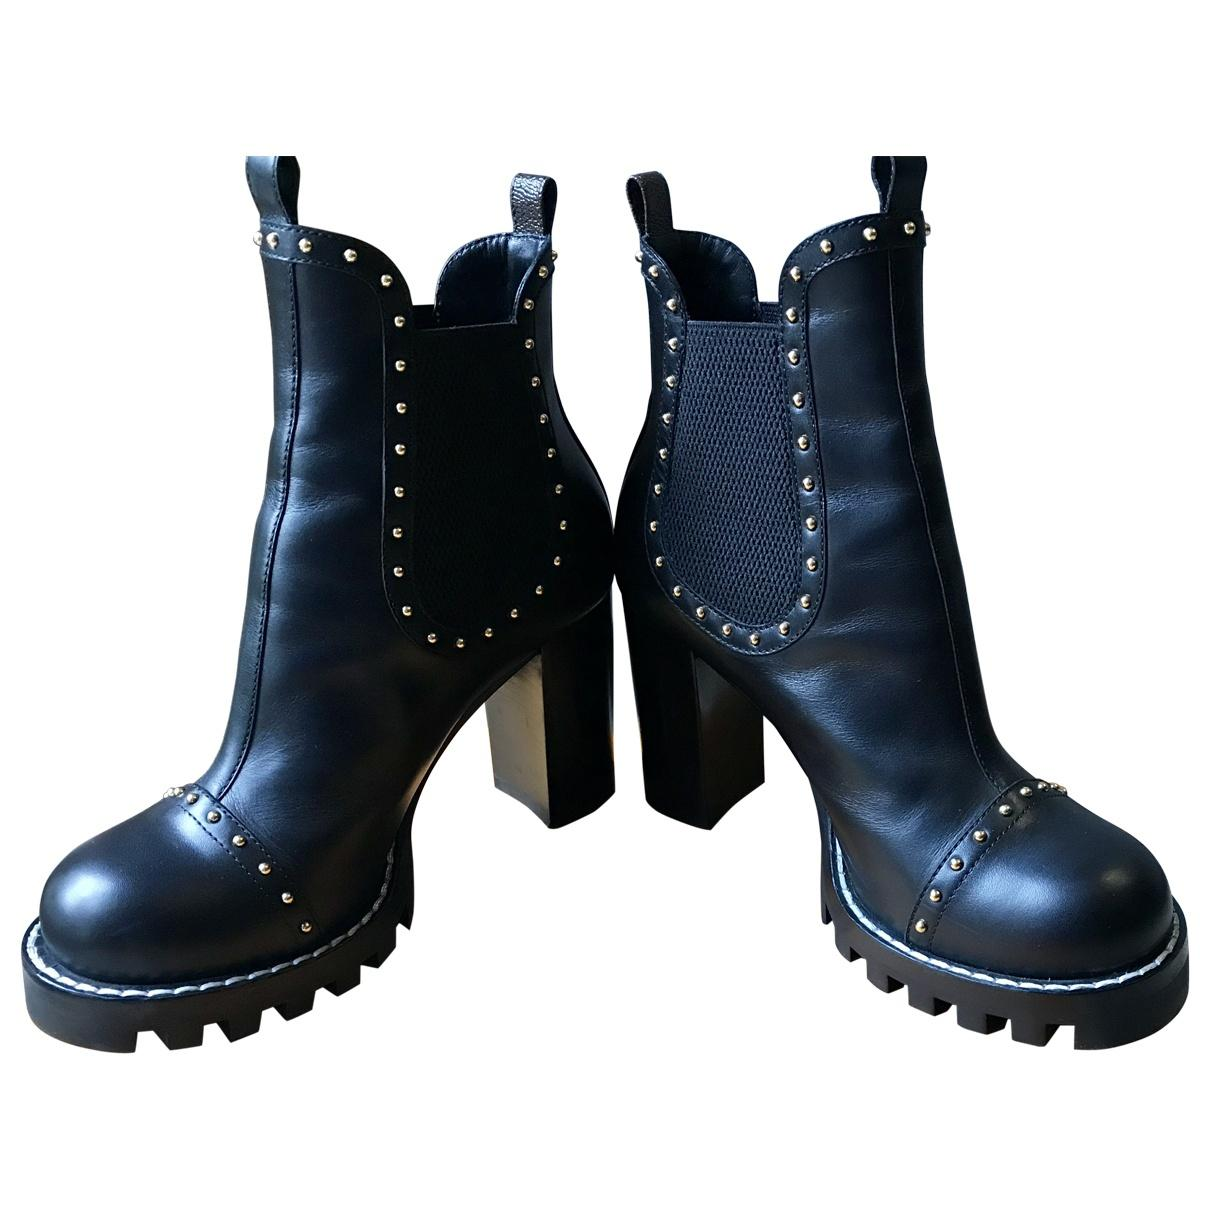 1fb2d1c9e4b7 Lyst - Louis Vuitton Pre-owned Leather Ankle Boots in Black